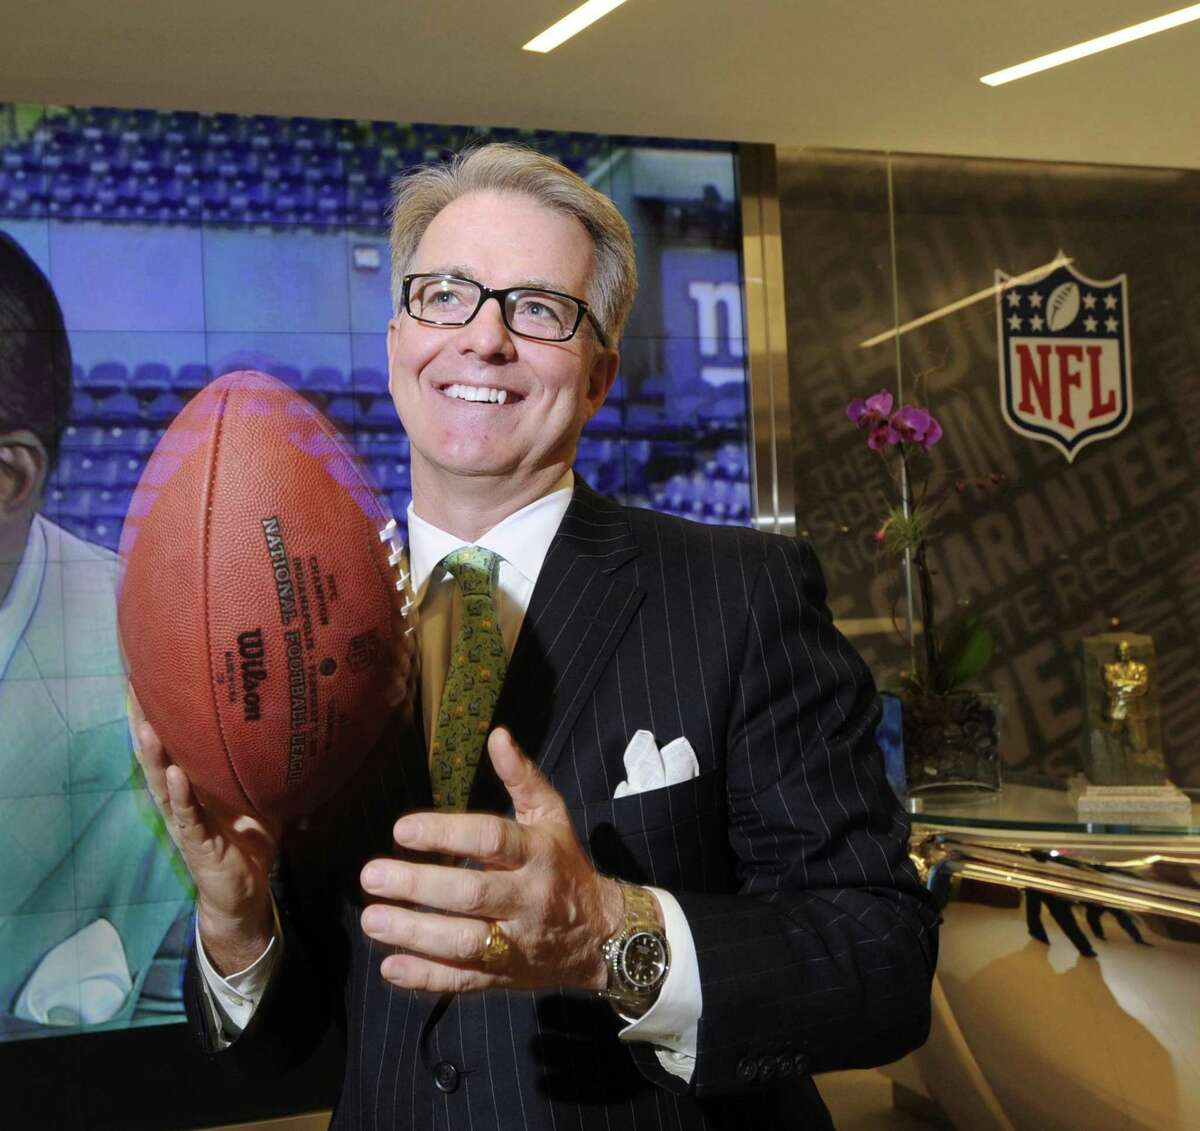 Greenwich resident Paul Hicks III, executive vice president of communications and government affairs for the National Football League at the time, holds a football in the NFL offices in New York City, Tuesday afternoon, Jan. 31, 2012.